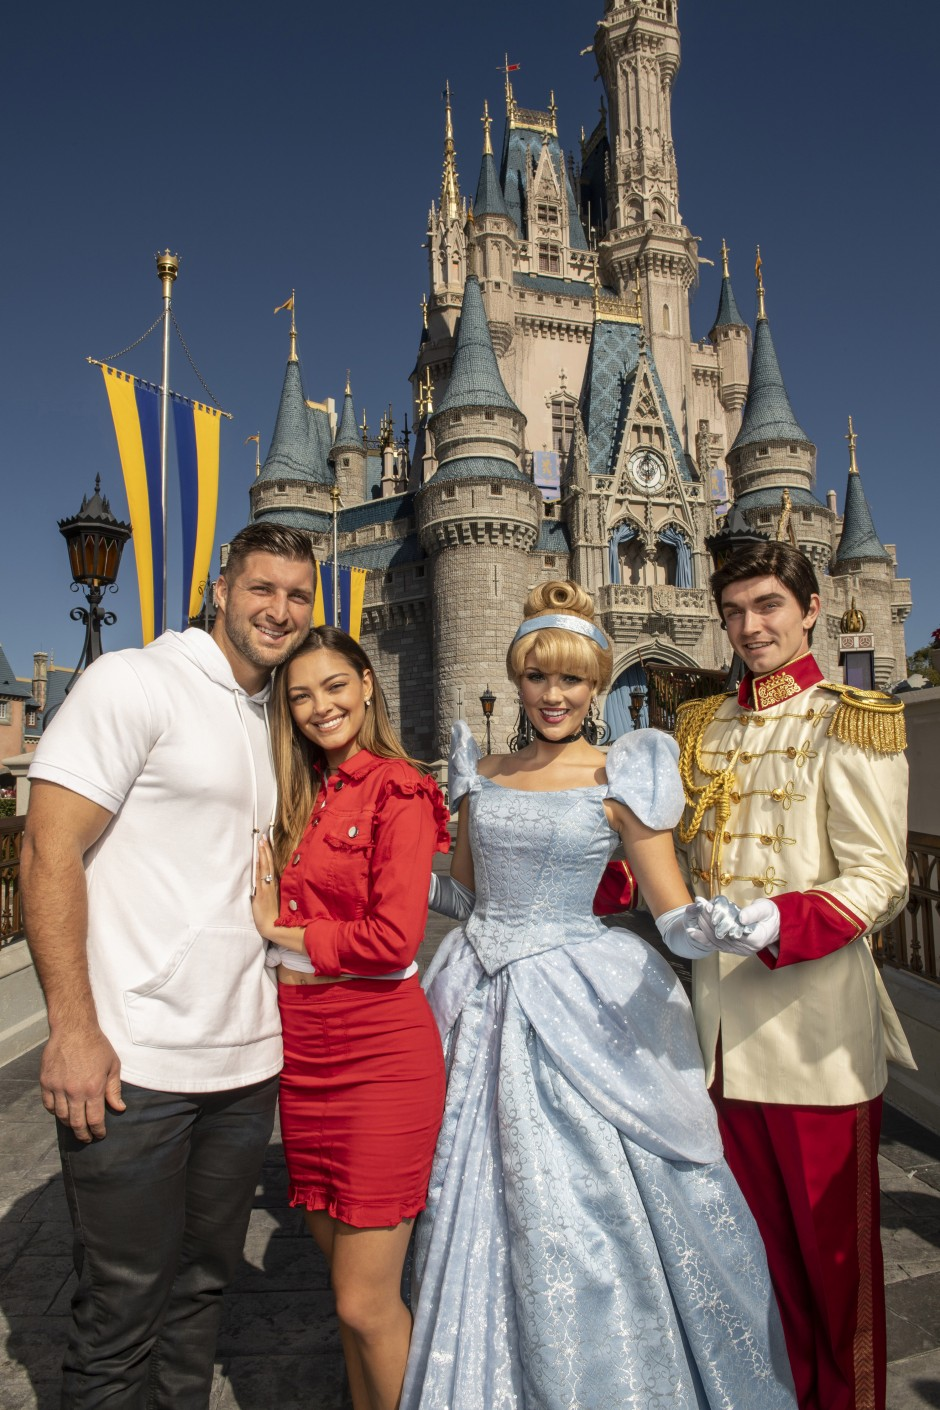 Star sightings: Which celebrities were spotted at Disney ...